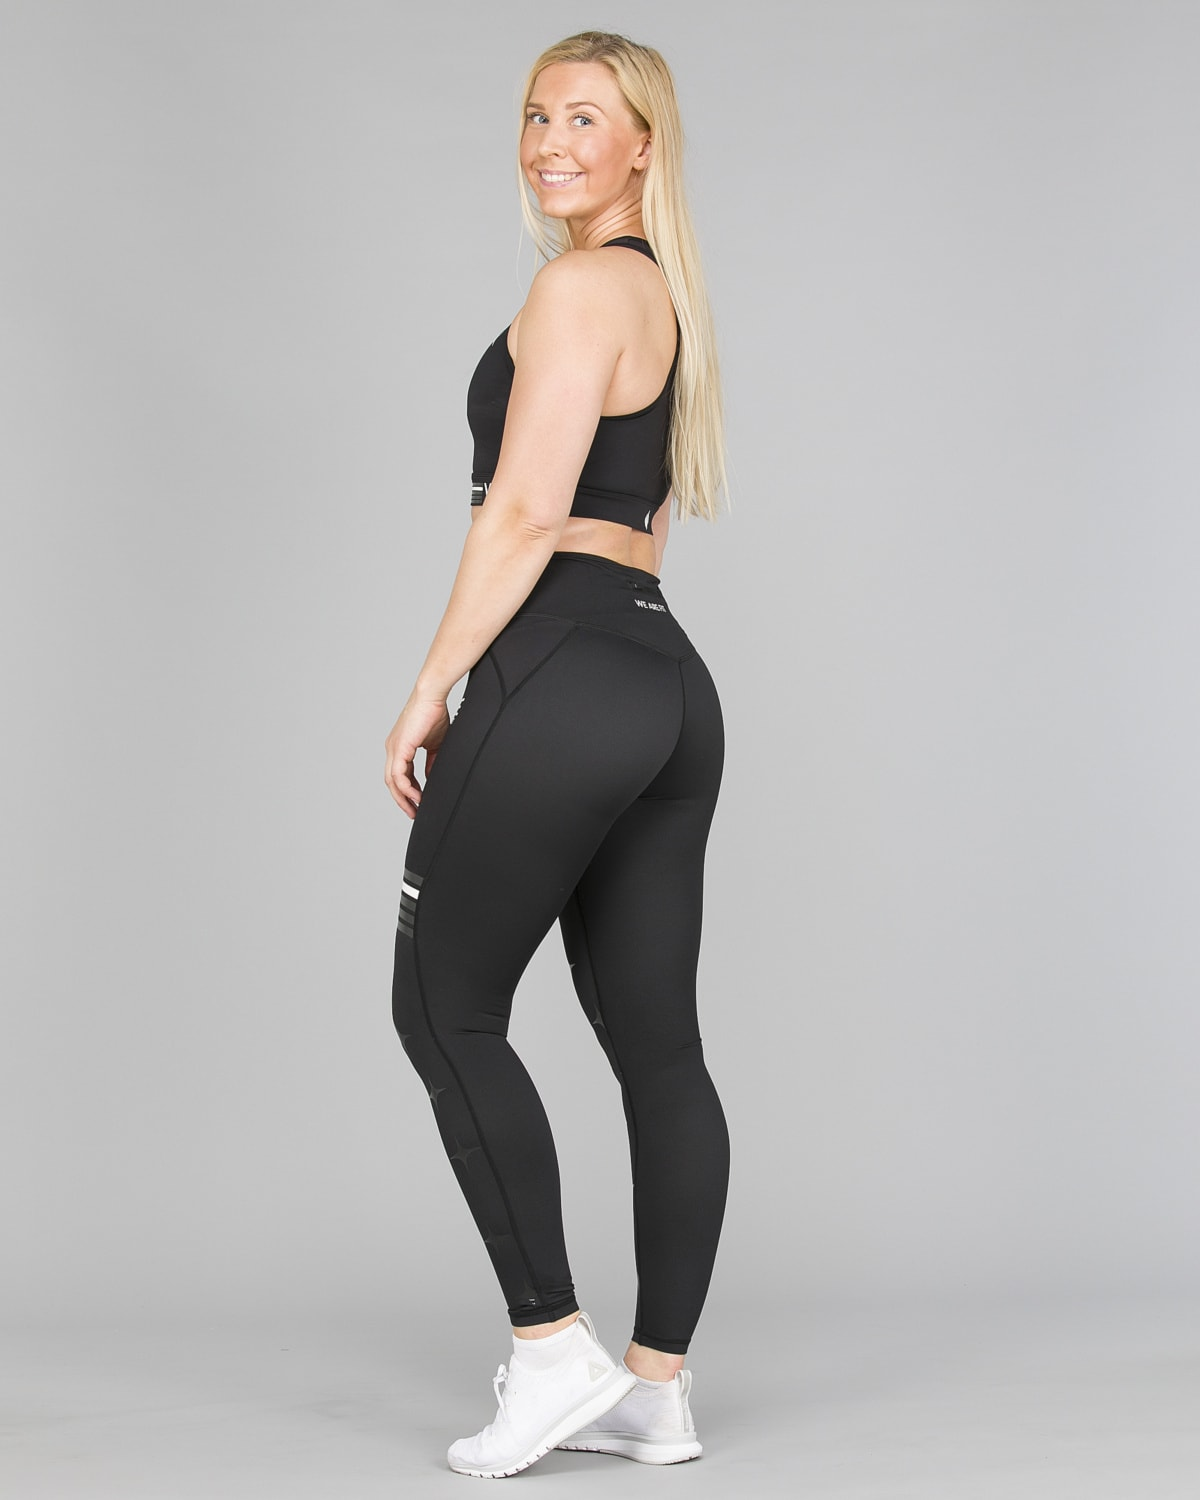 We Are Fit Star Black Tights11